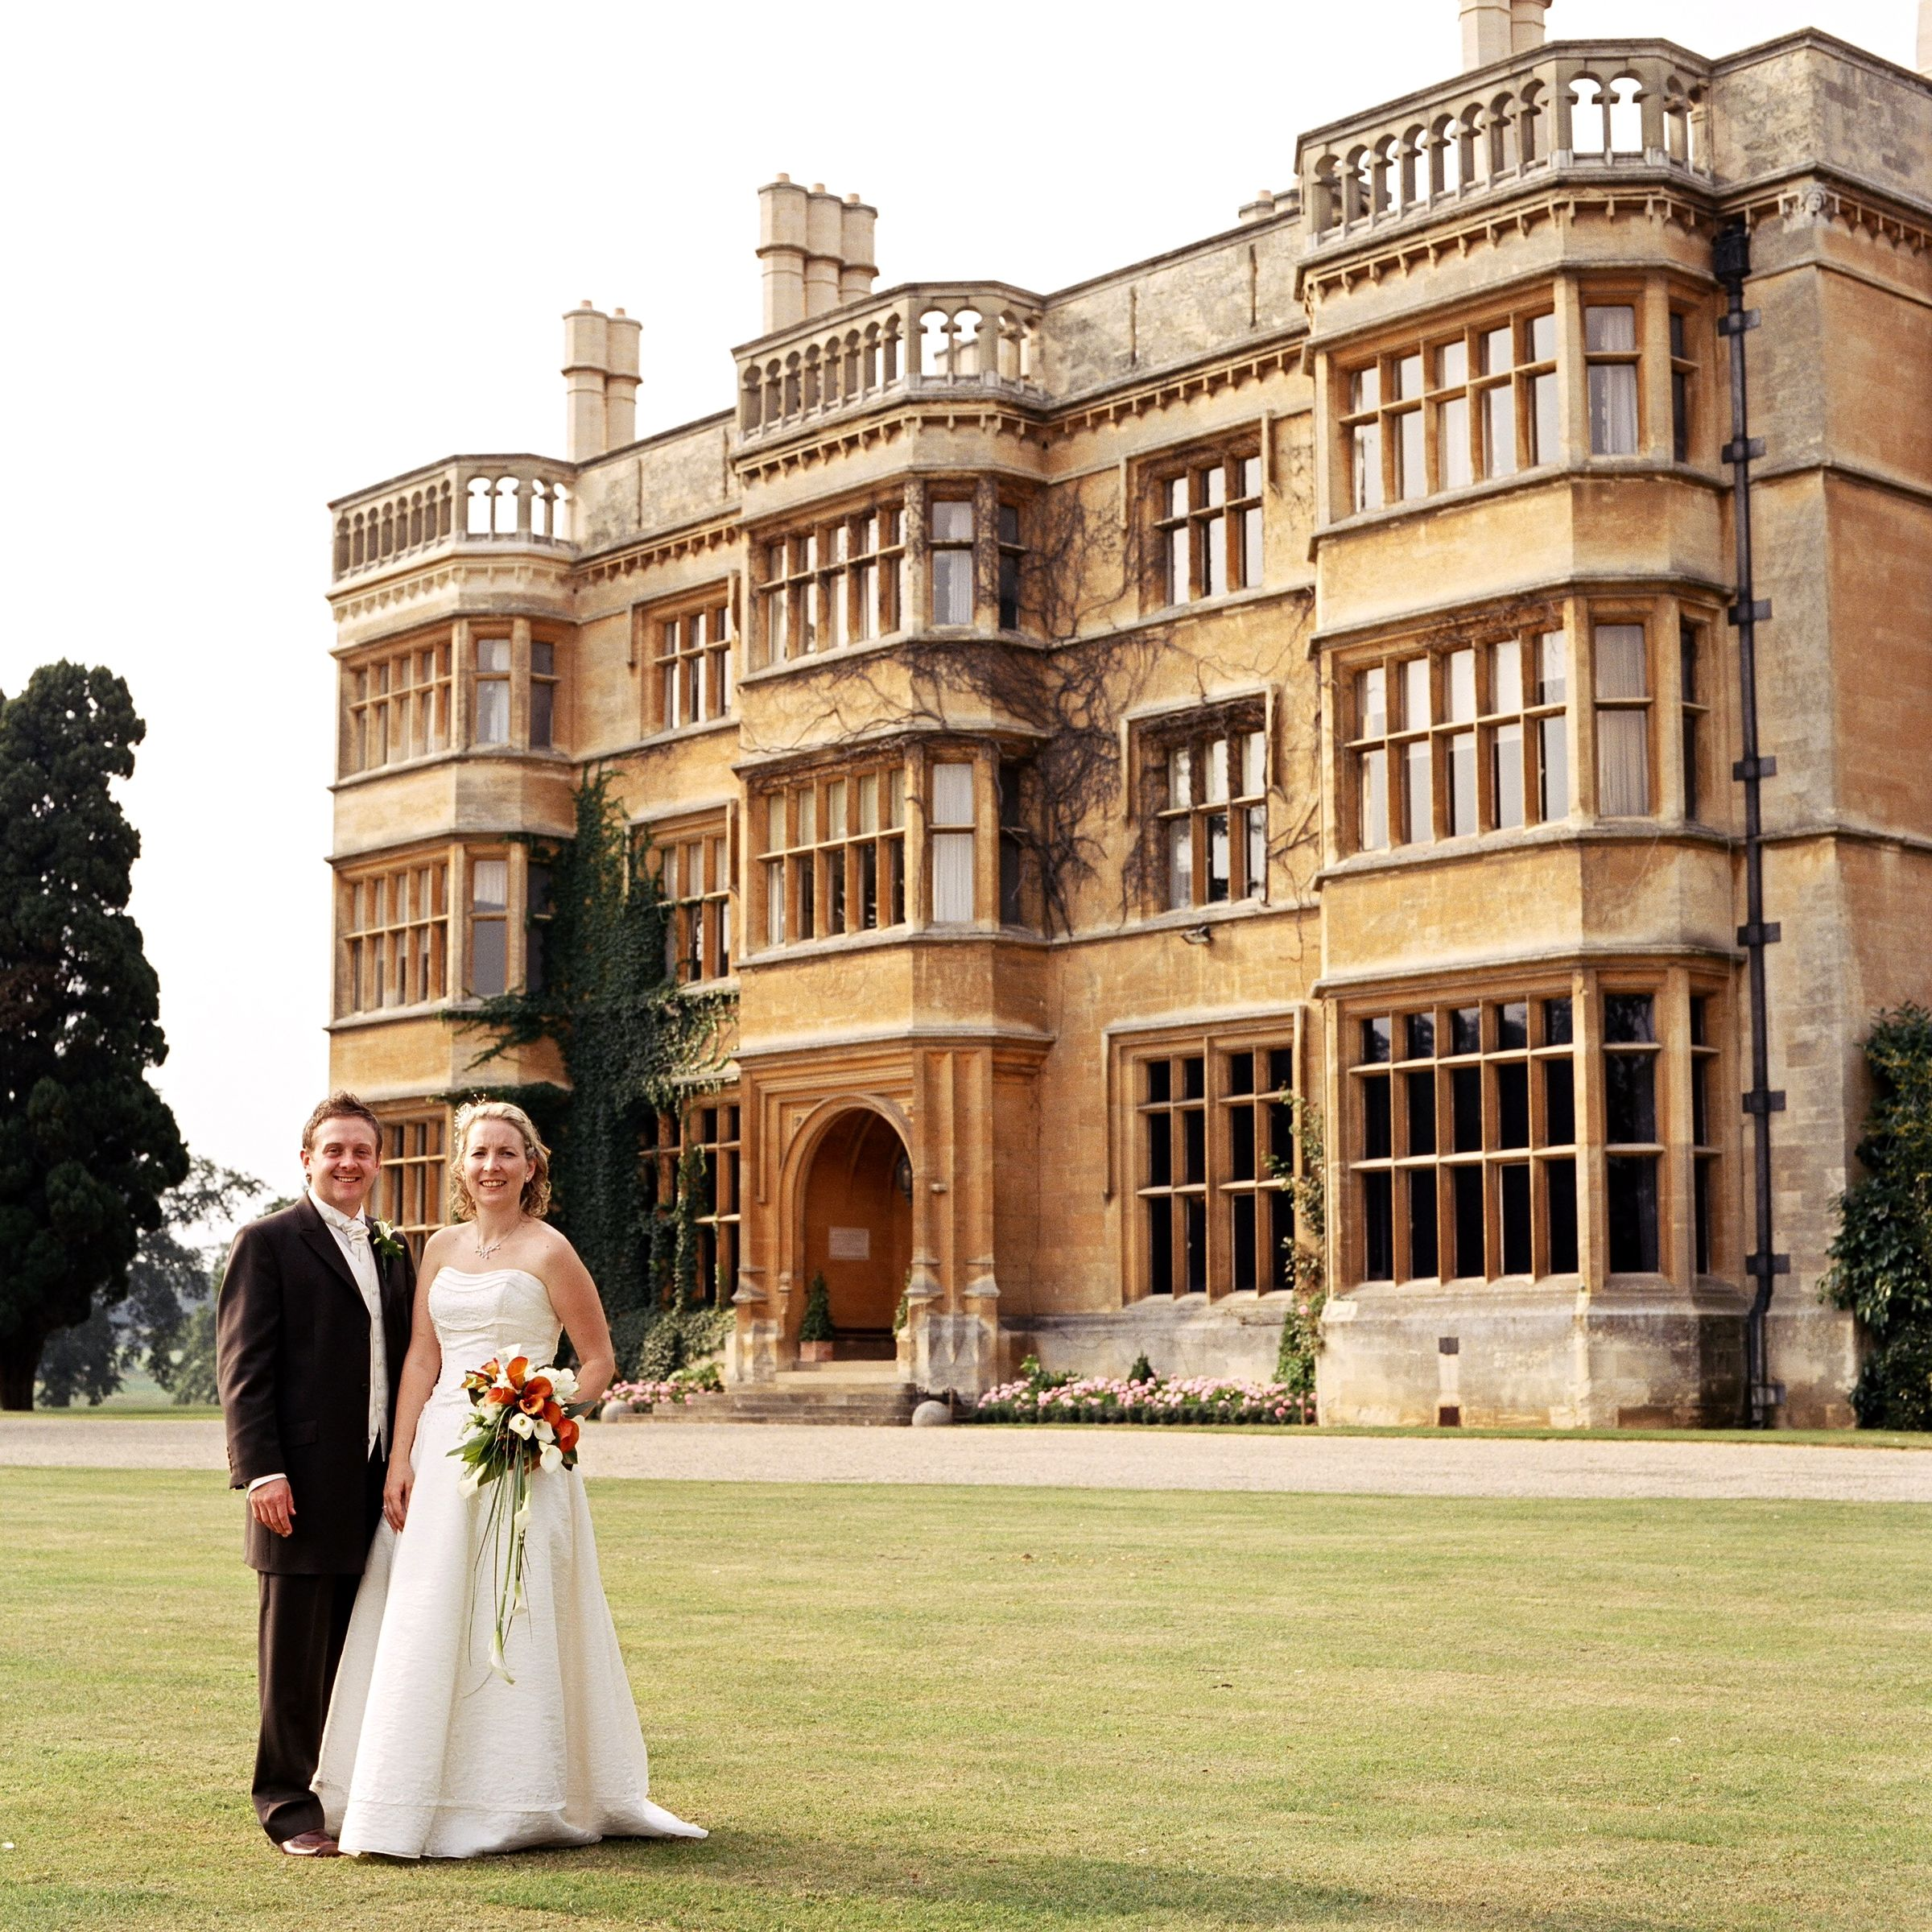 Weddings at The Mansion House, Old Warden Park, Shuttleworth | The ...